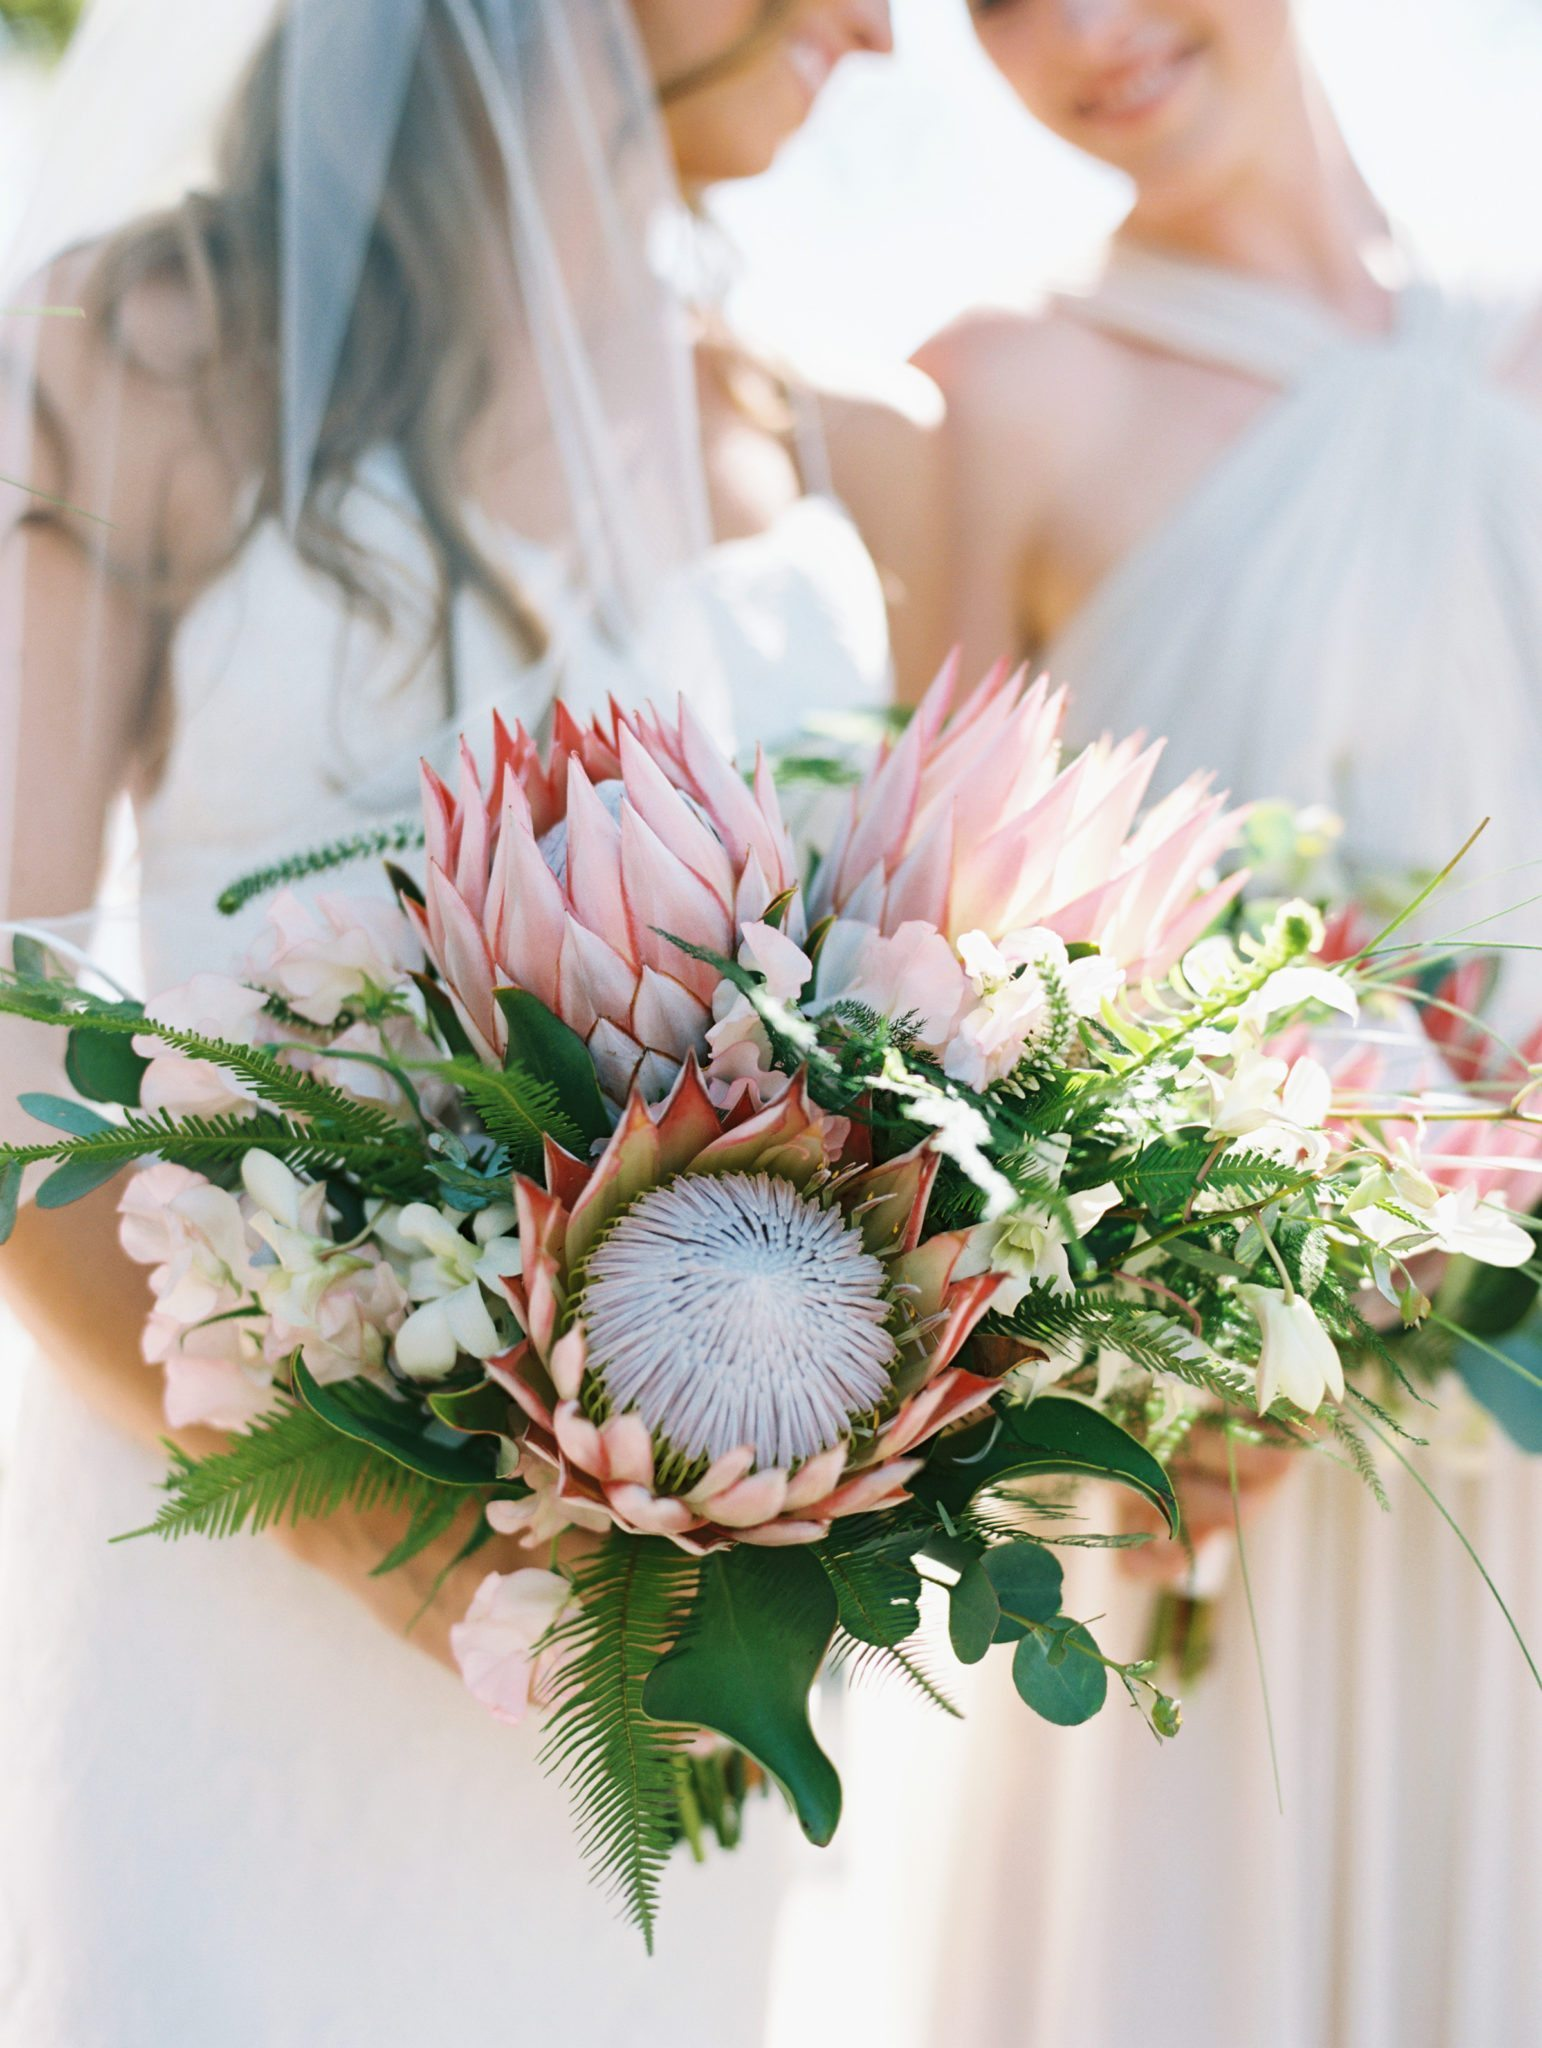 Tropical Bouquet in Hawaii | Maui Destination Wedding Planners | Maui's Angels